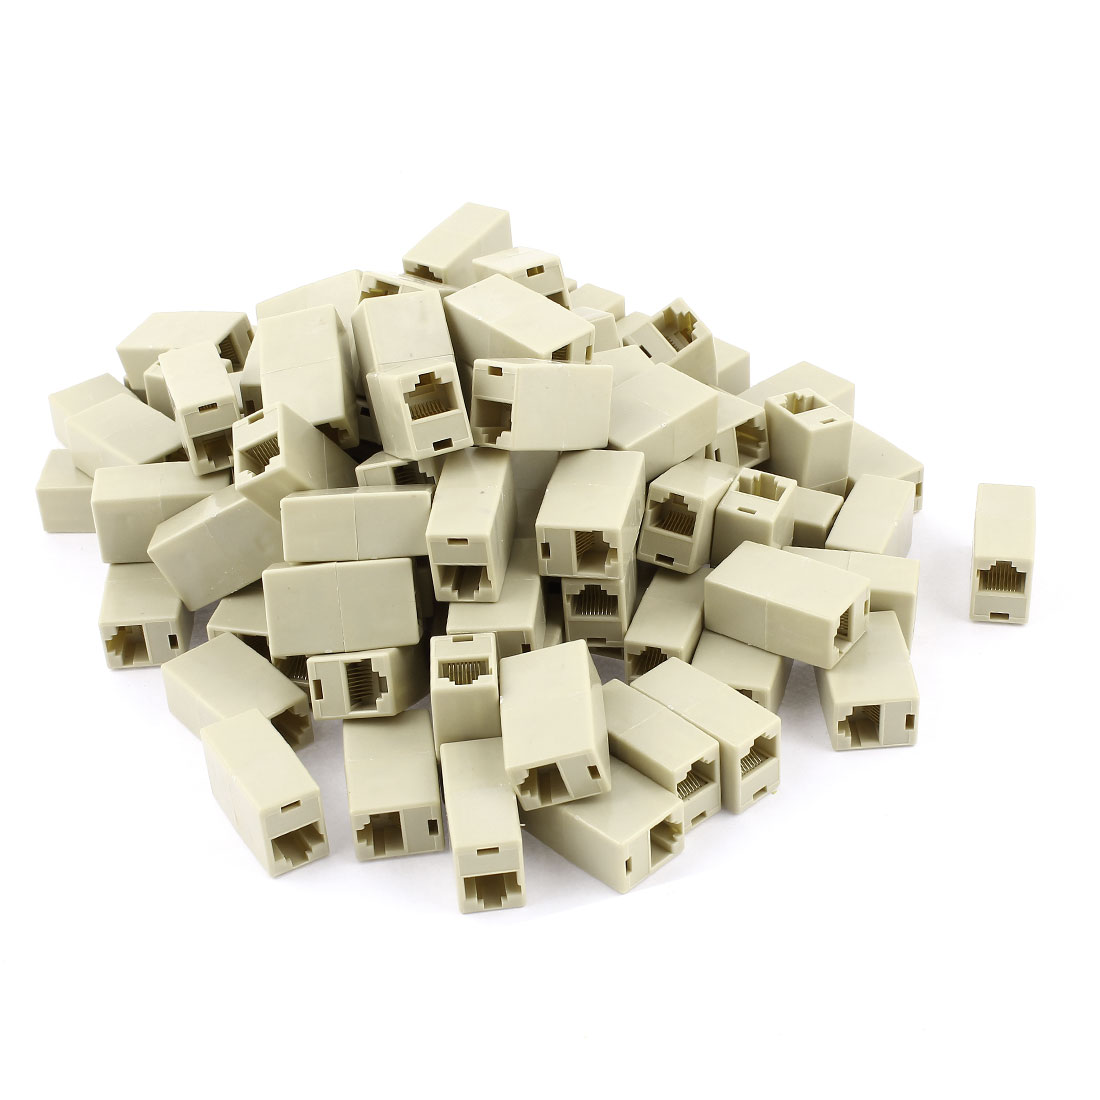 100 x Beige 8P8C RJ45 Female Socket Cat5 Network Cable Joiner Adapter Couplers